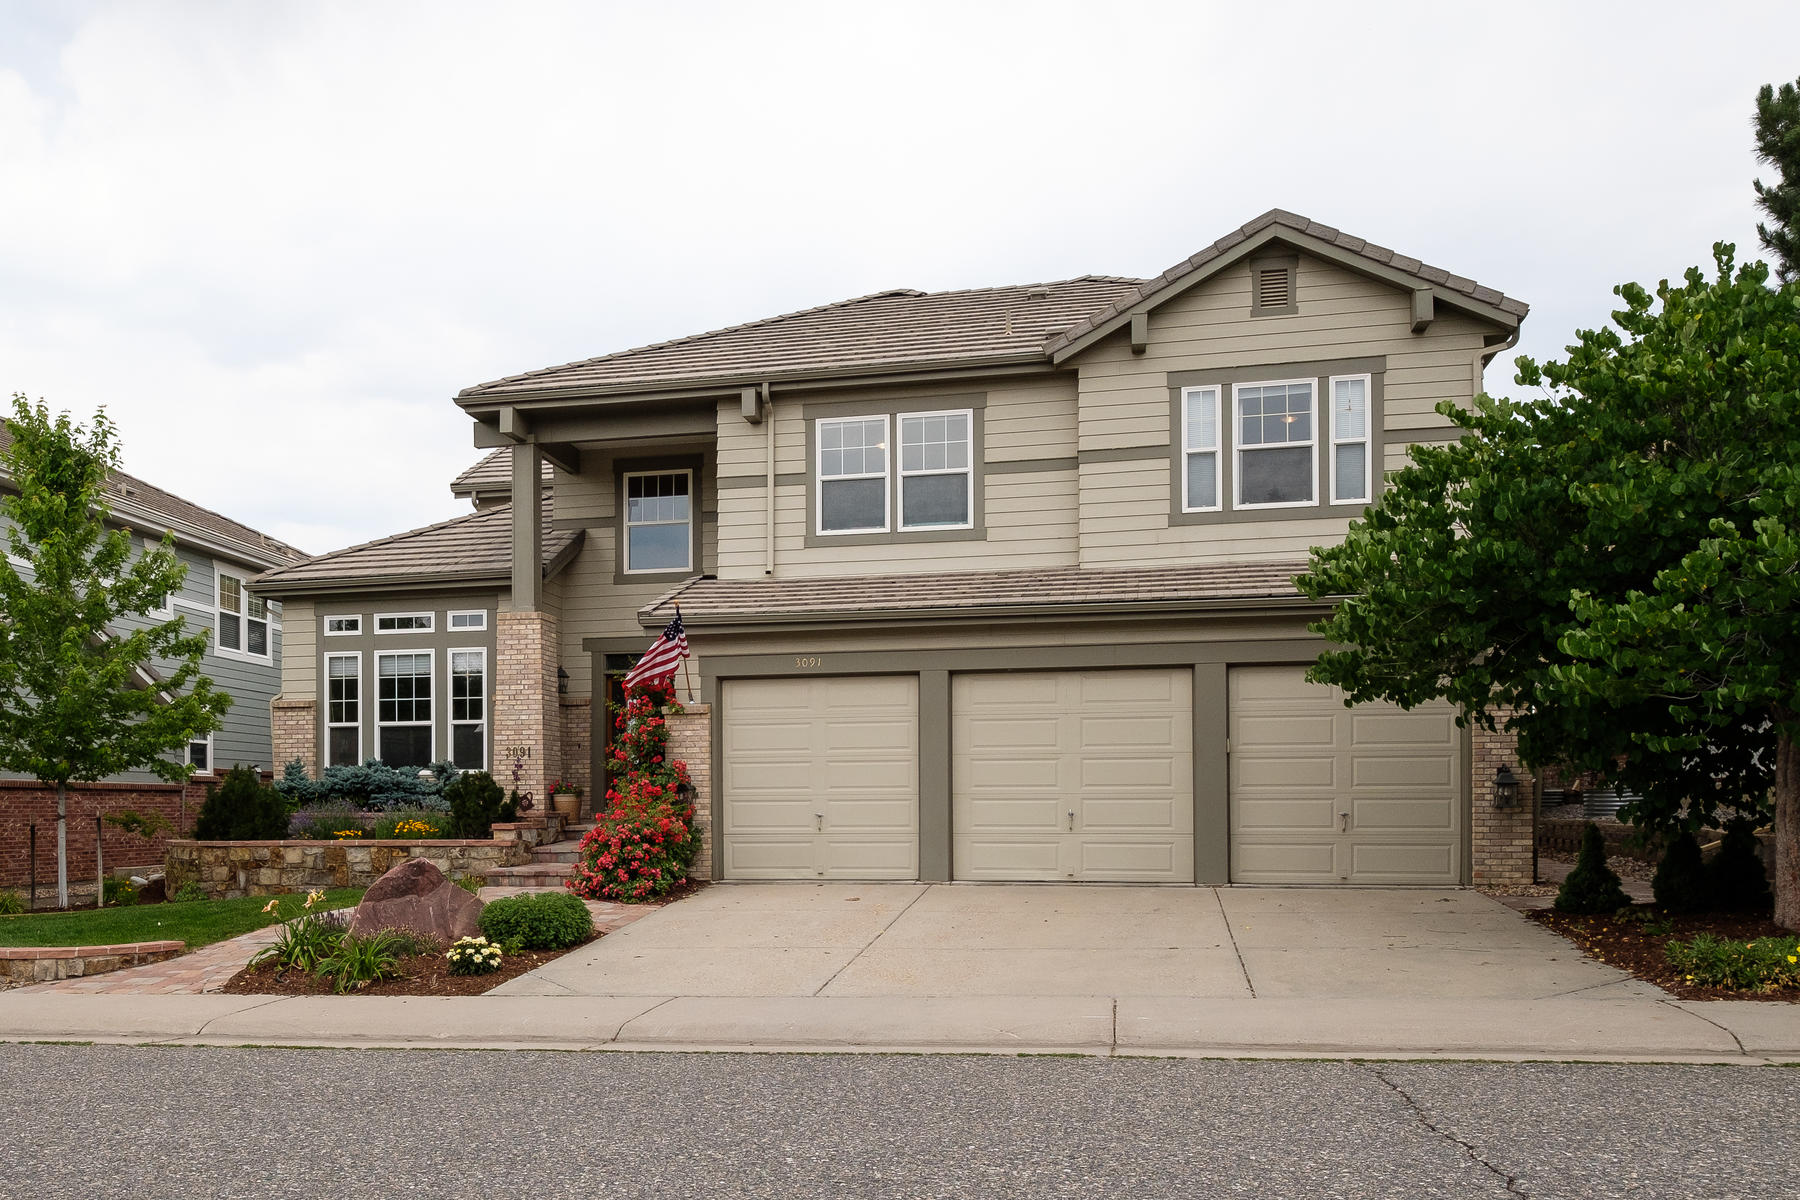 Single Family Home for Active at A classic craftman style interior with a new gourmet kitchen 3091 Greensborough Drive Highlands Ranch, Colorado 80129 United States